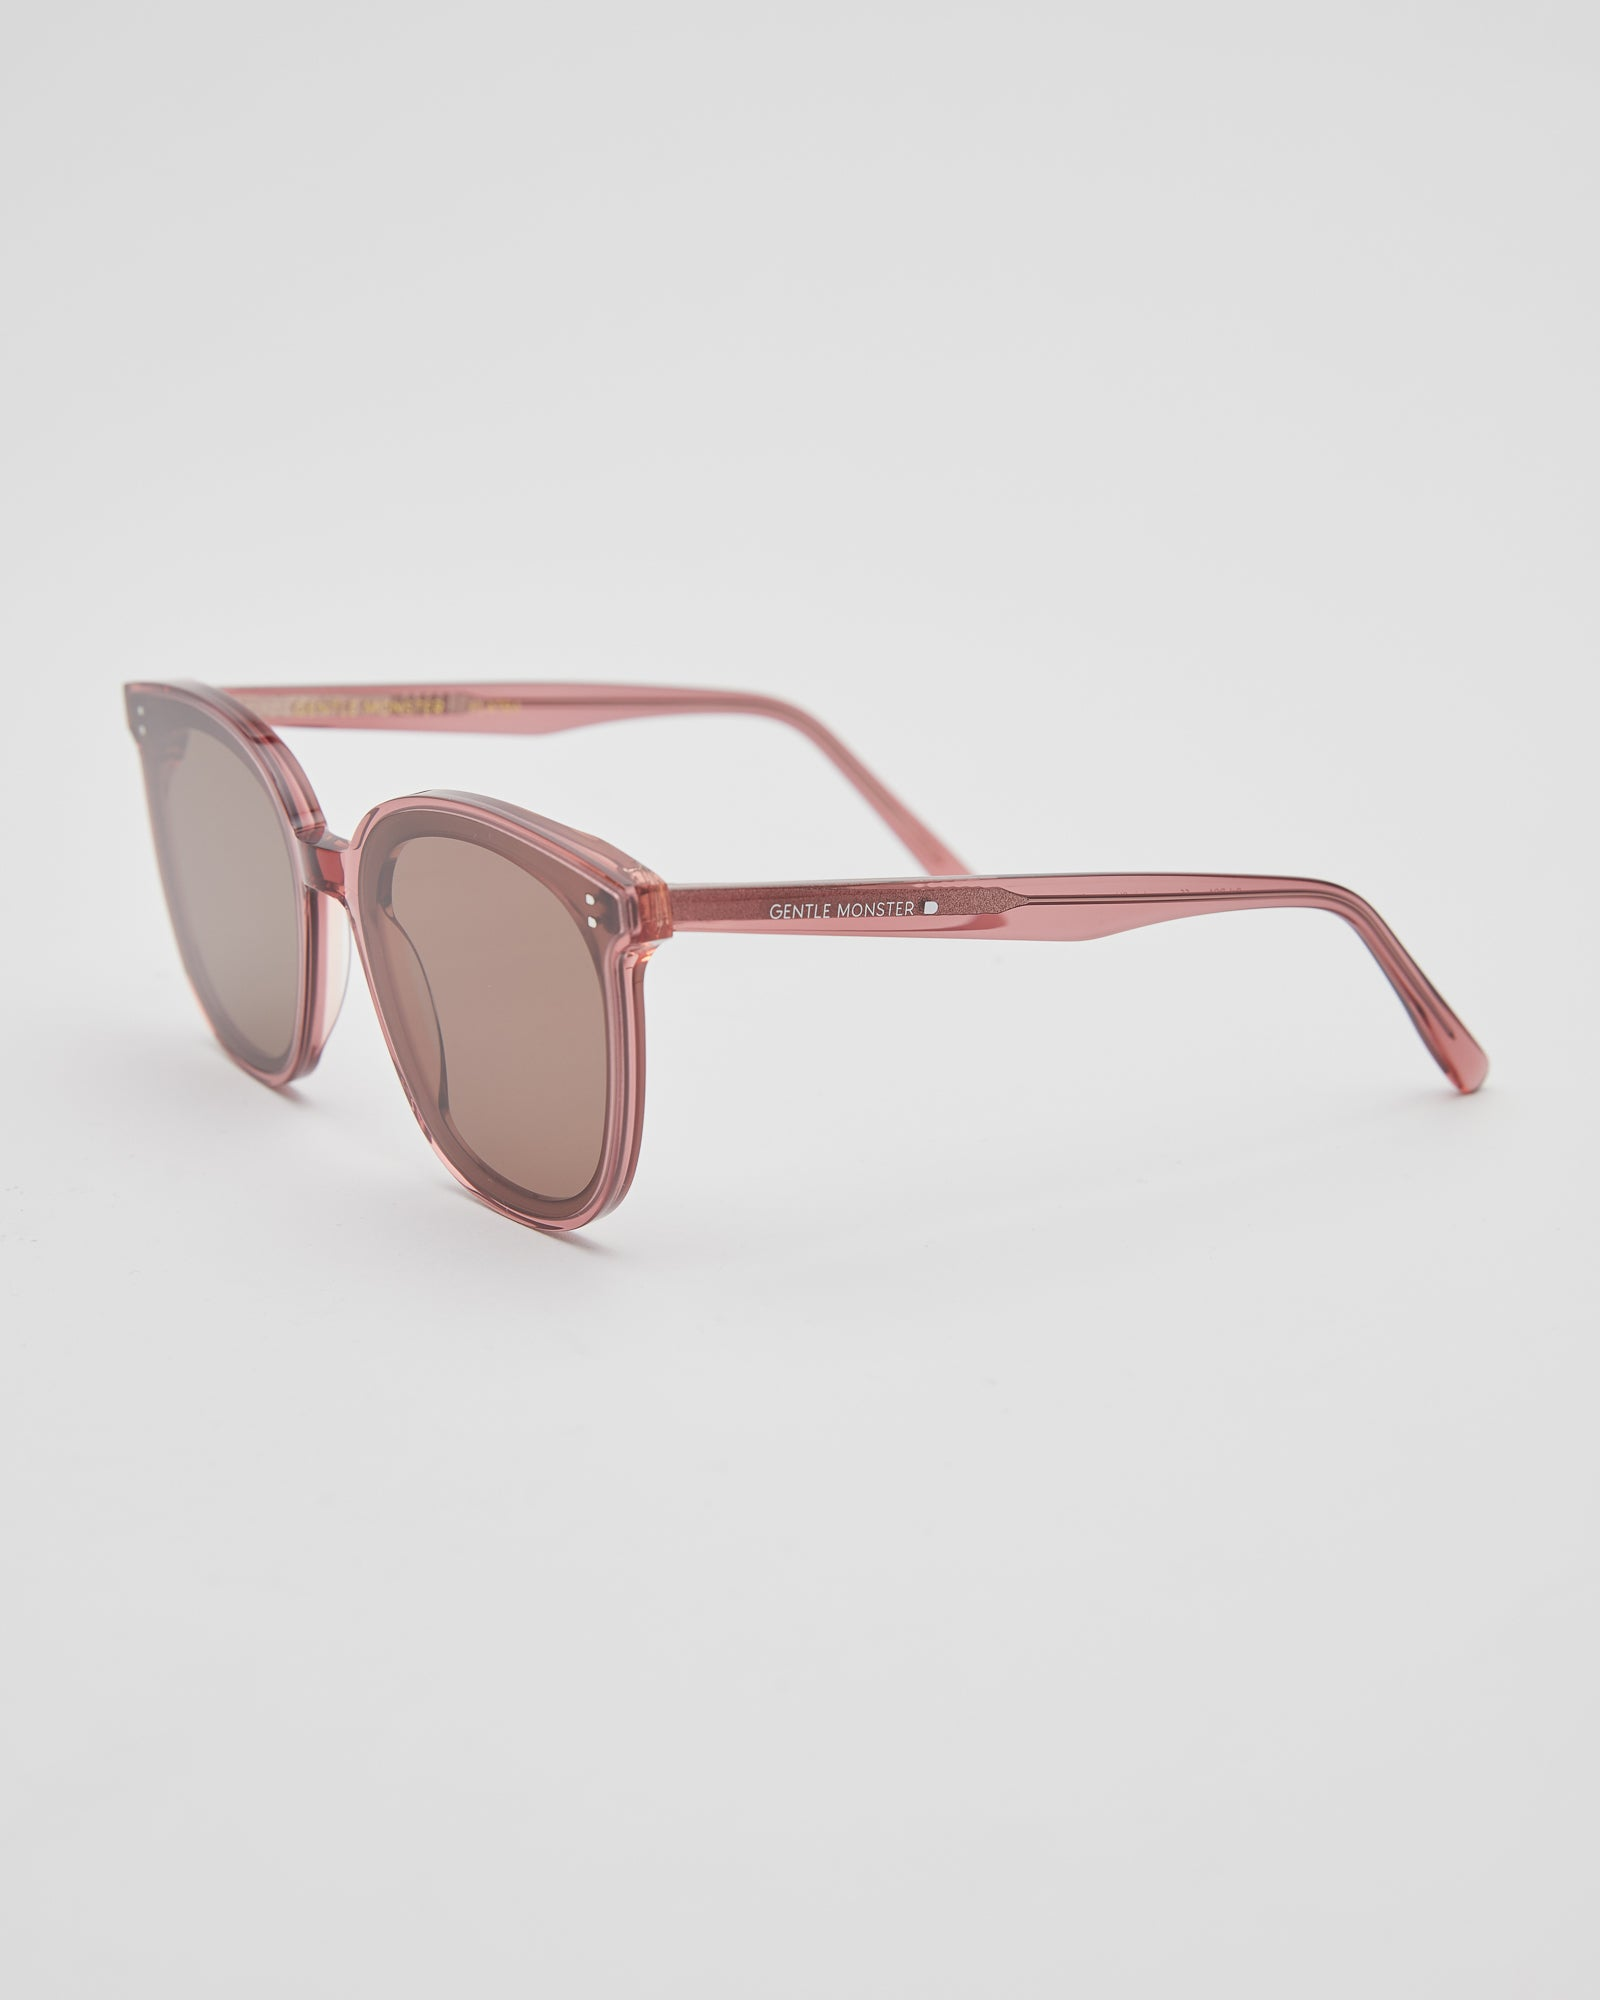 My Ma-BC4 Sunglasses in Rose